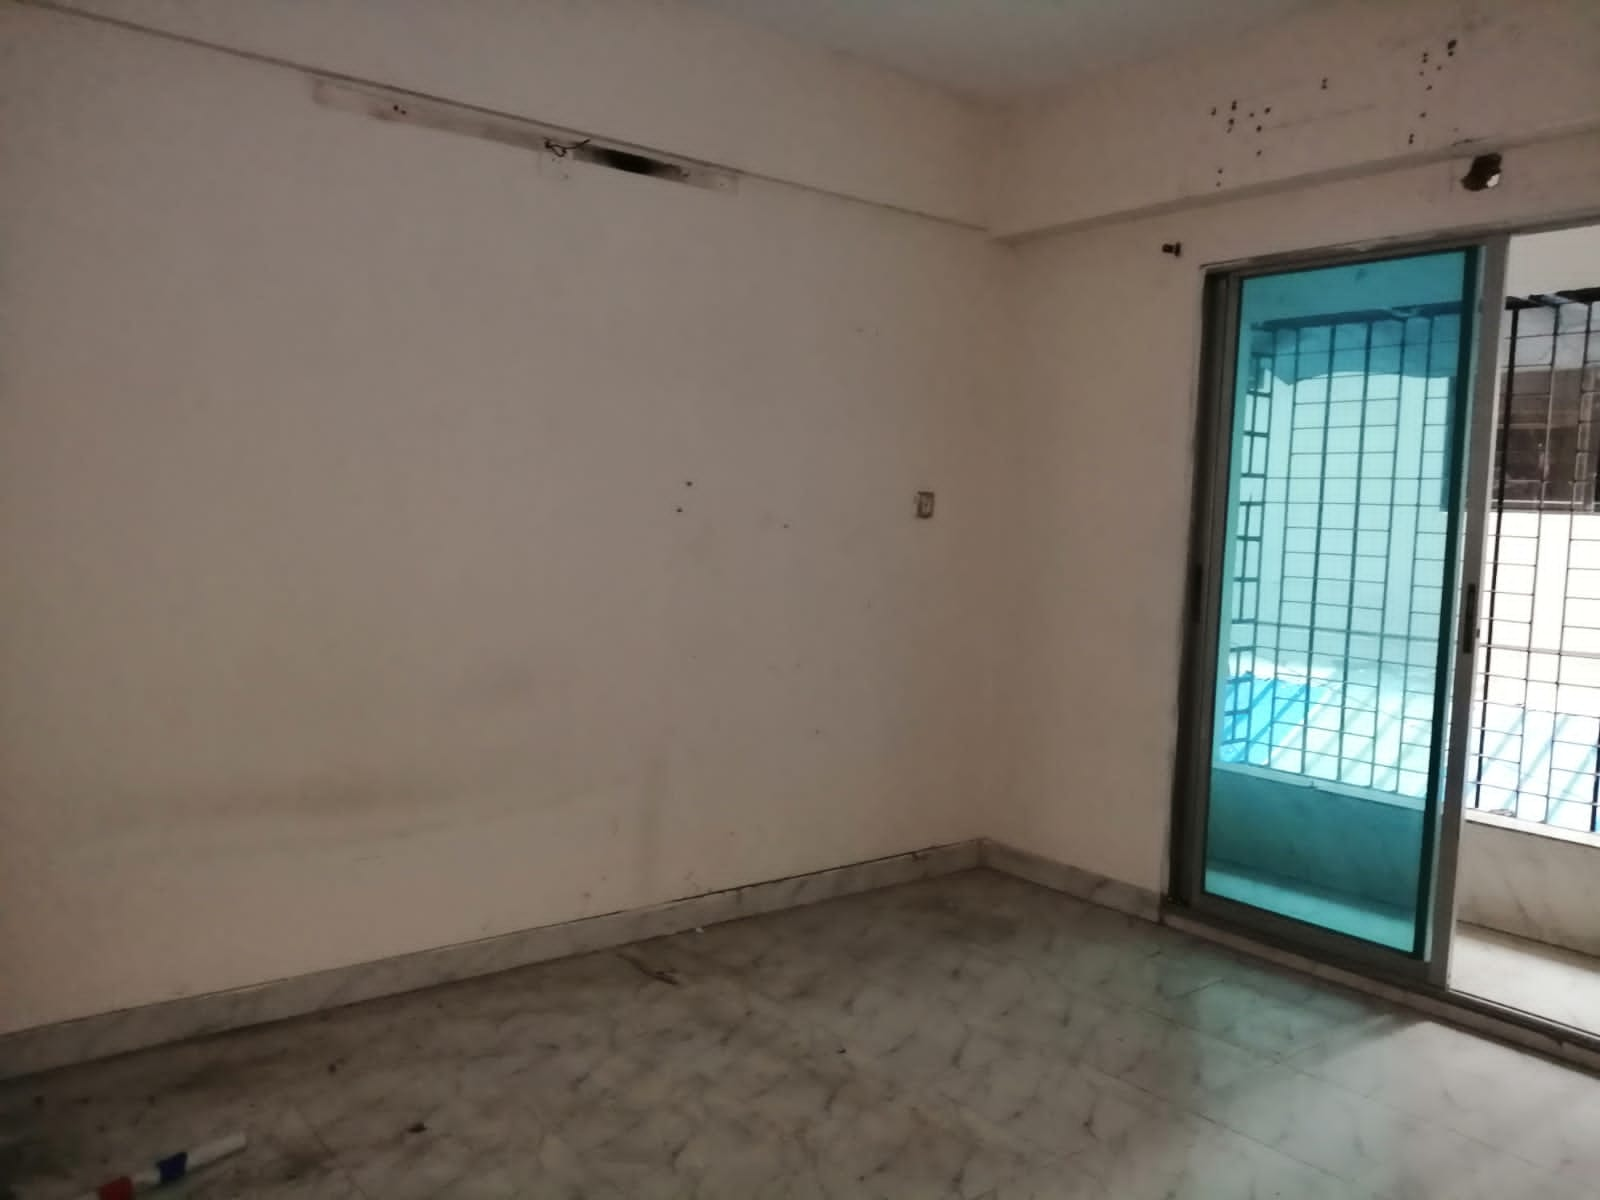 1200-sft-apartment-for-sale-in-kalabagan-6th-floor-733677